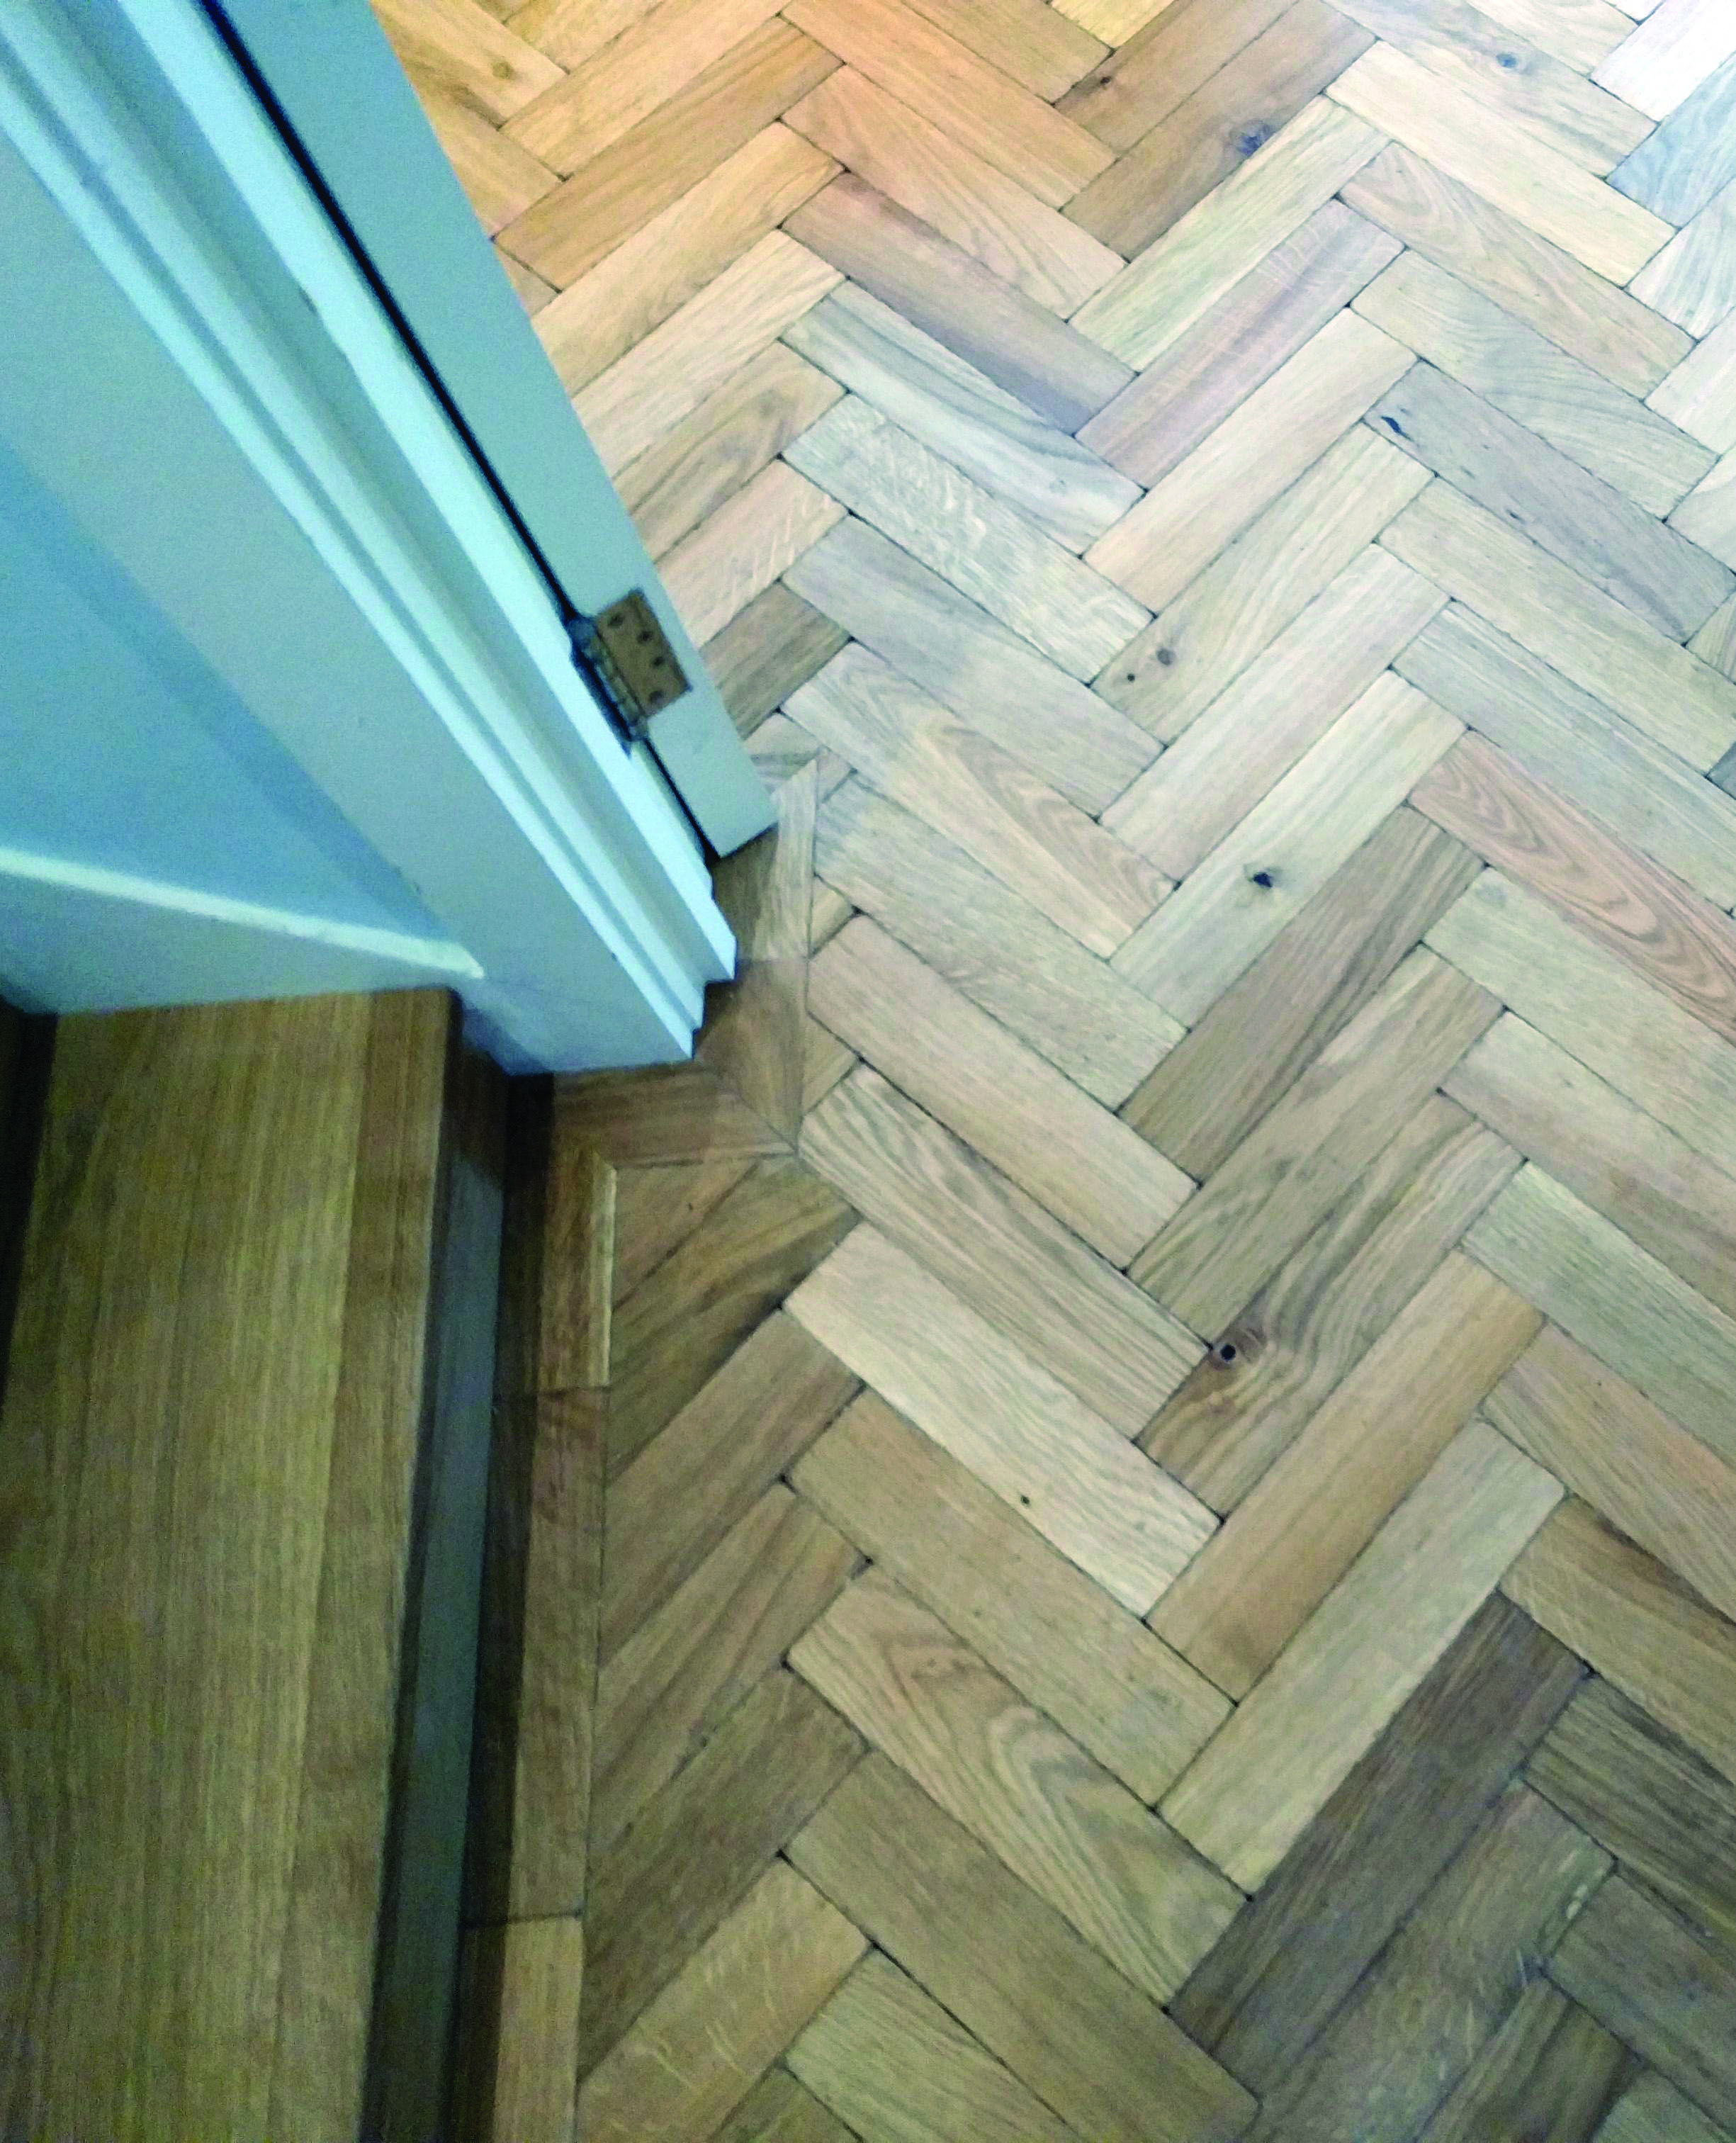 Find Parquet Flooring 1970s Only On This Page Parquet Flooring Wood Parquet Flooring Basement Flooring Options